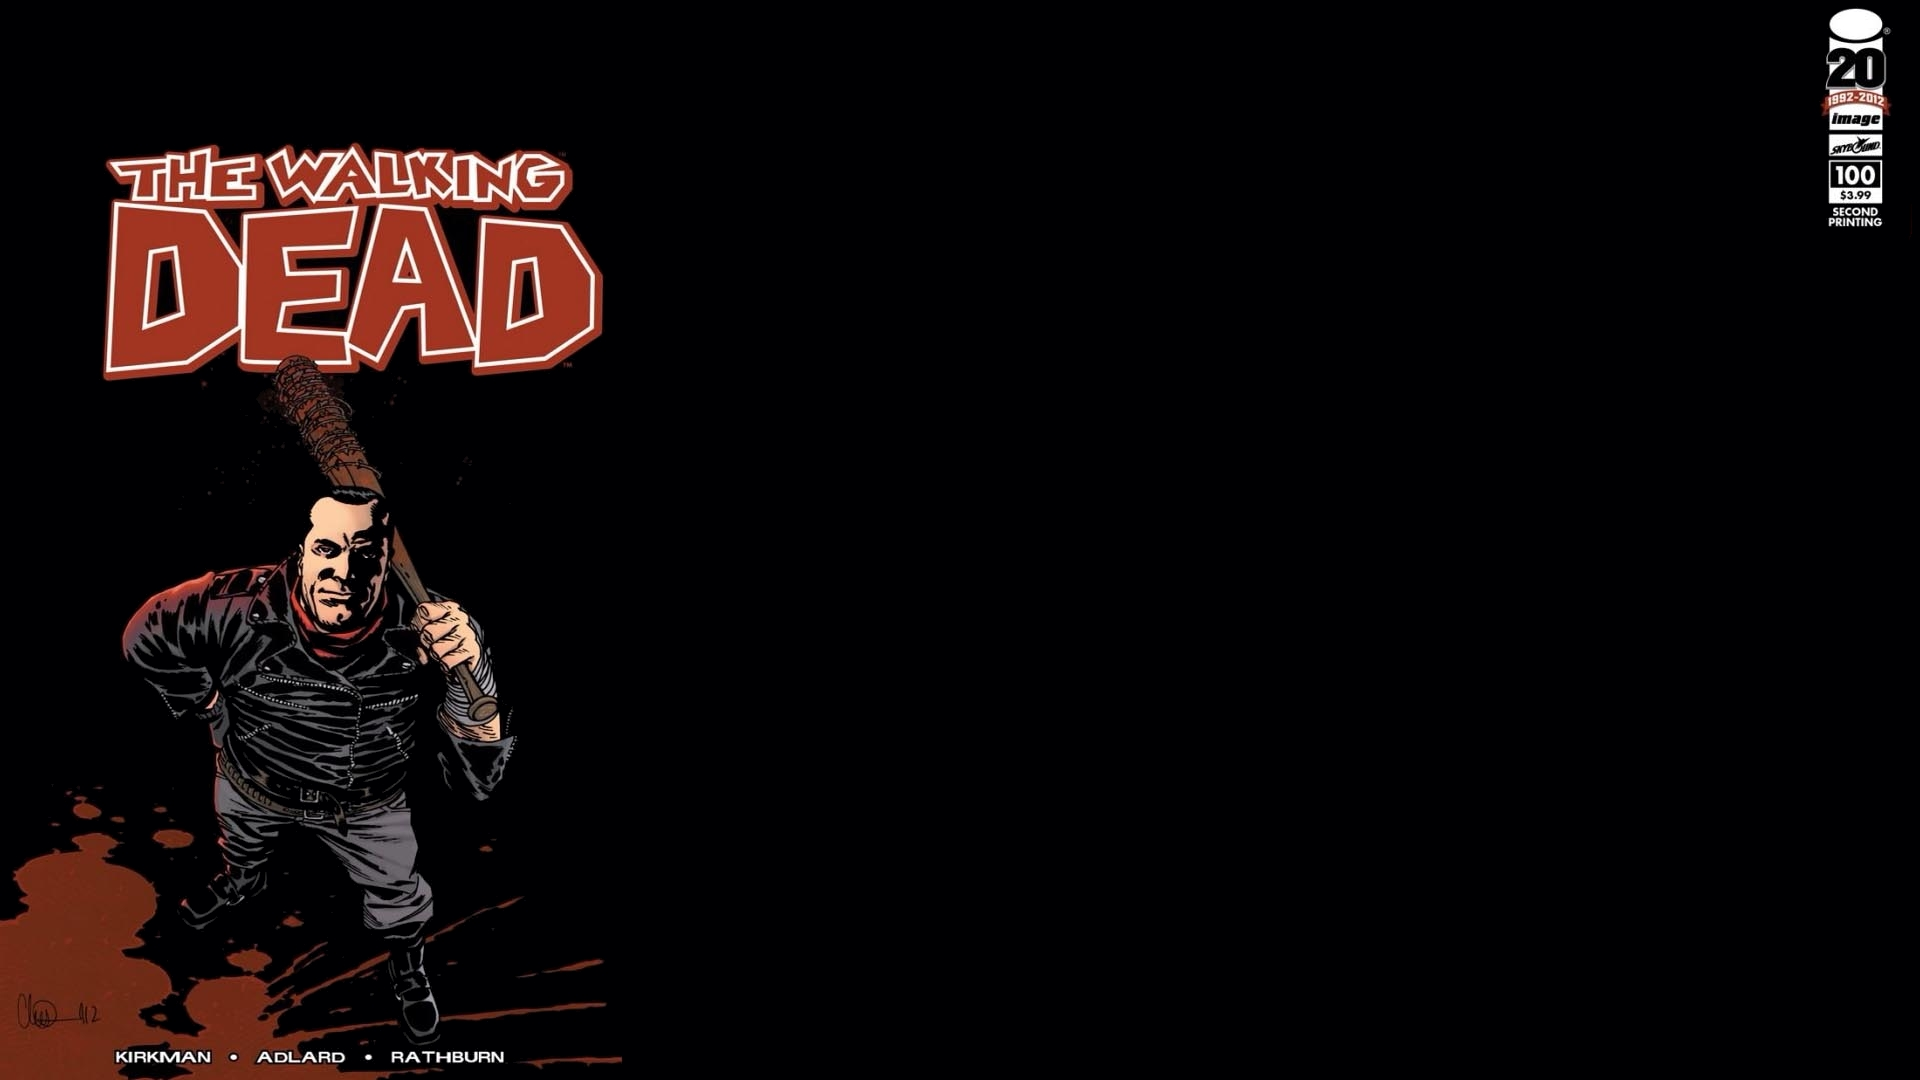 The Walking Dead HD Wallpaper